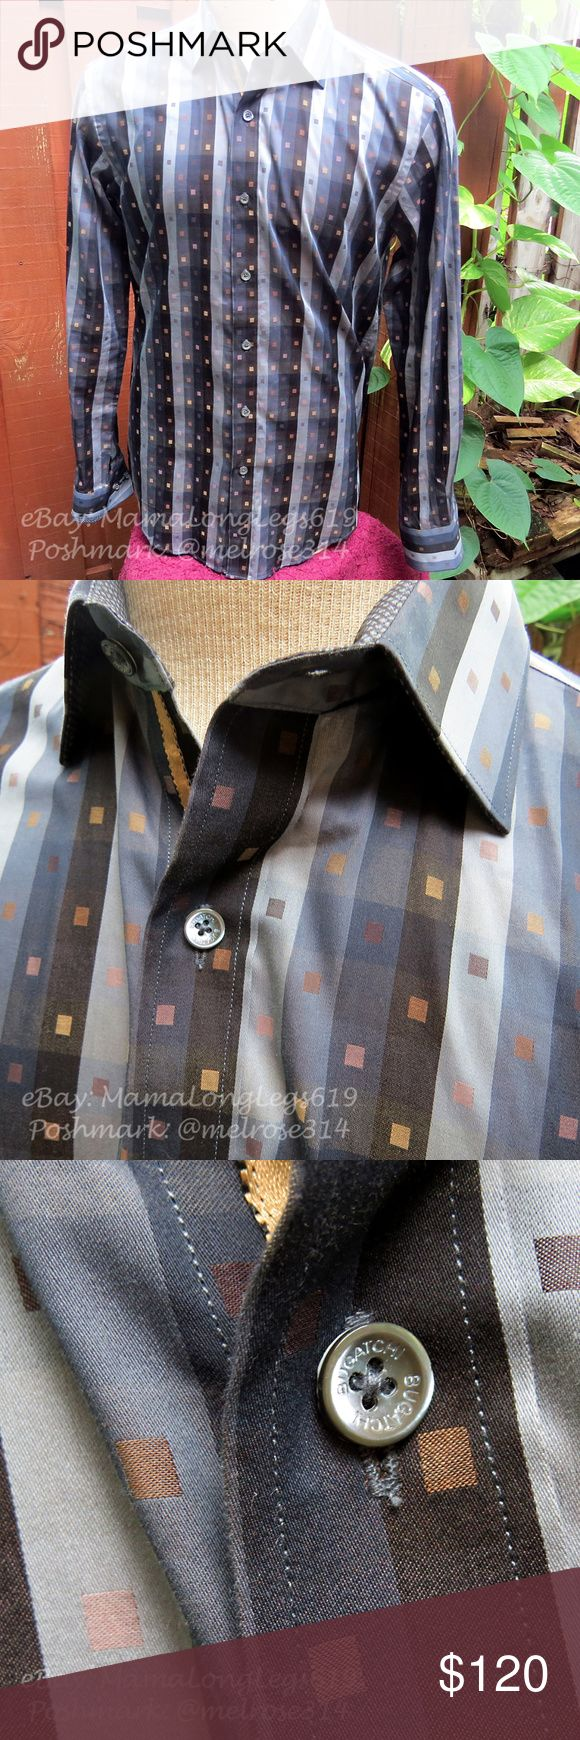 """Bugatchi Uomo Shaped Fit Plaid Striped Shirt Very handsome slim-fit Shaped Bugatchi Uomo long-sleeved button-down shirt, size S. Gorgeous, rich colors of golds, darker blues and grays and """"reverse print"""" inside, with well-complemented print on the interior rolled-sleeves.  A great shirt for work – business or pleasure!  Fantastic preowned condition. No rips, stains or tears. From a smoke-free home.  I love to work deals, so if you're interested in other items of mine, feel free to Bundle and…"""